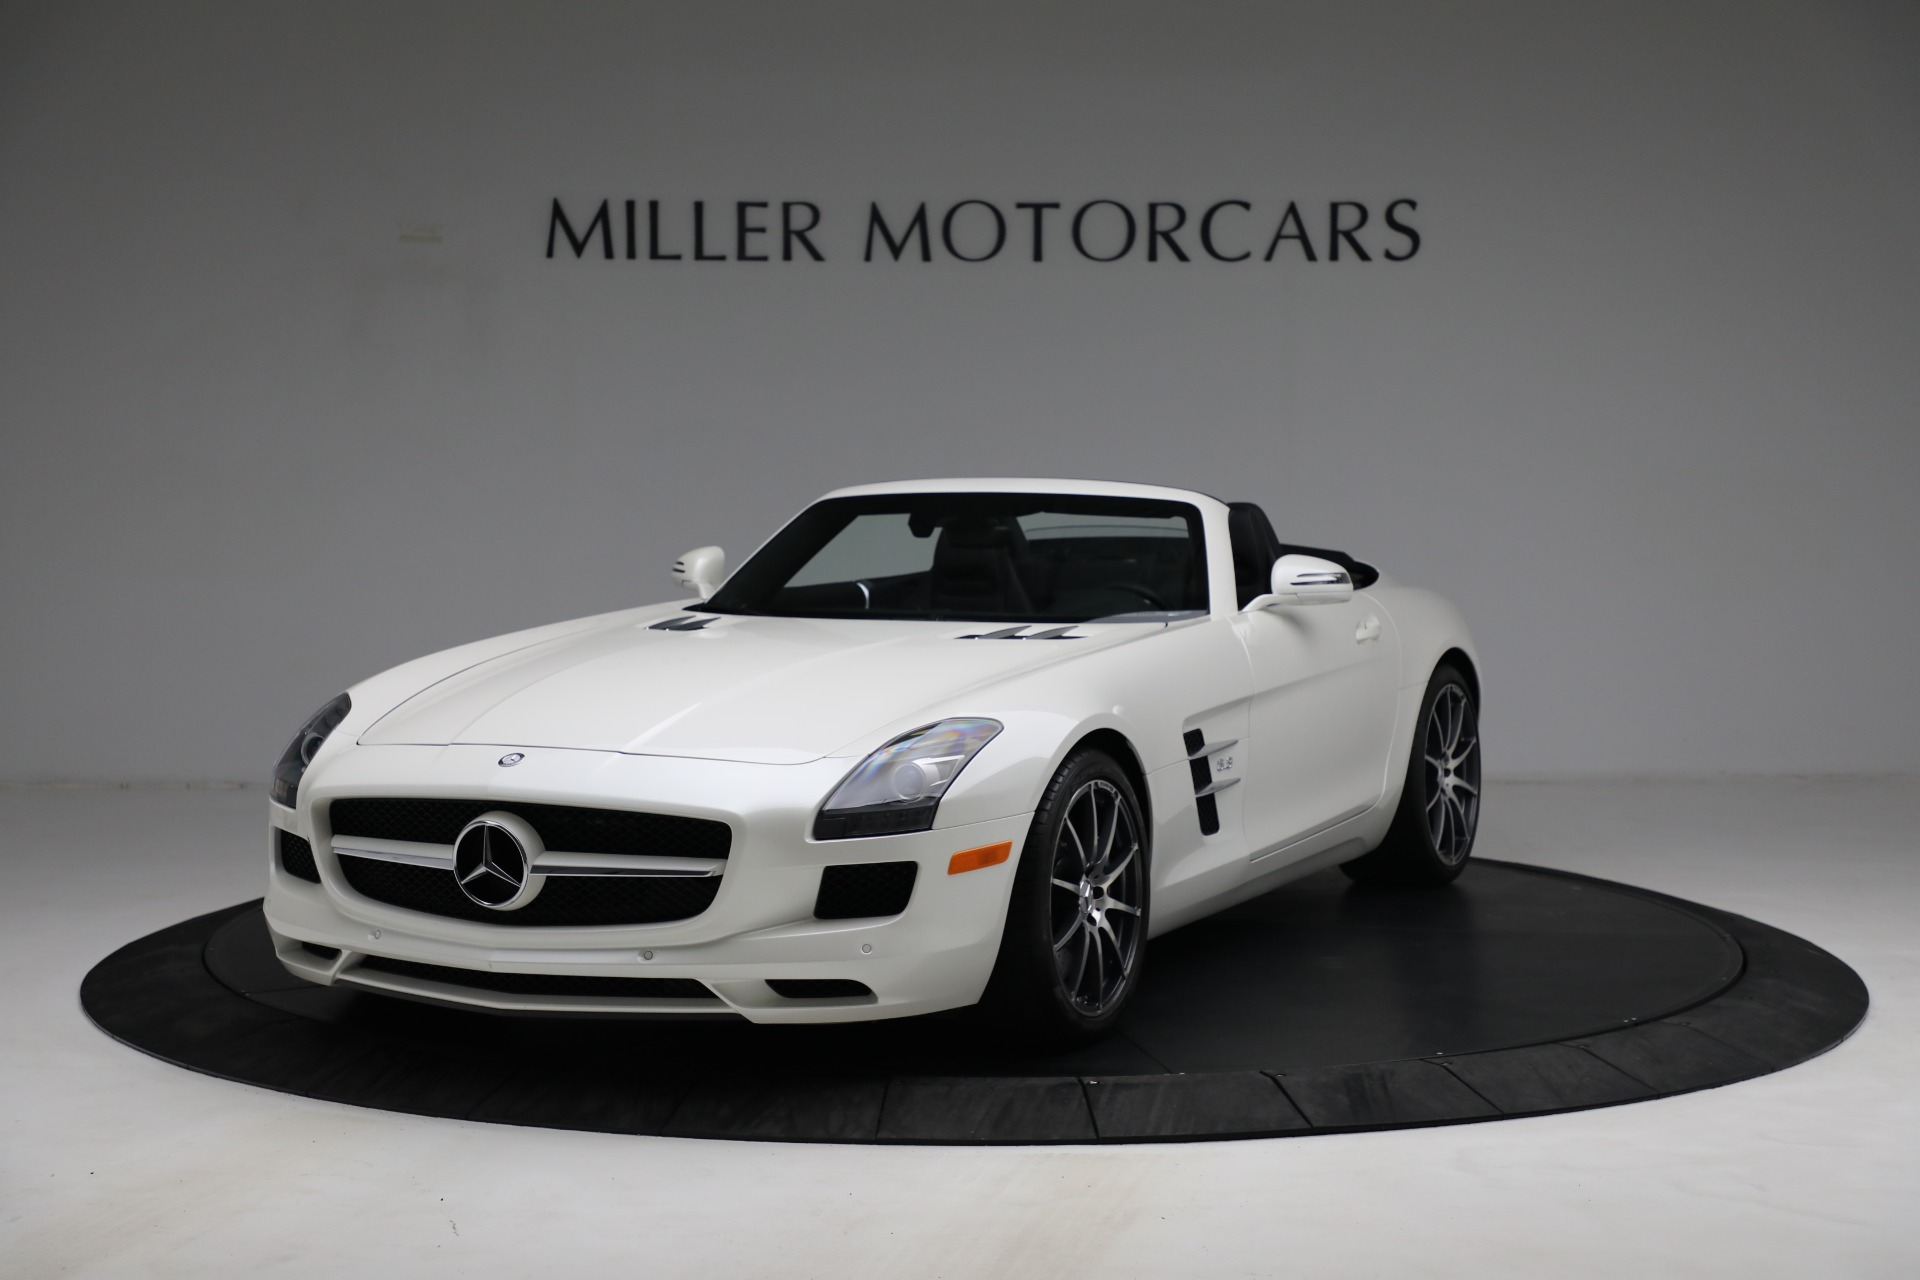 Used 2012 Mercedes-Benz SLS AMG for sale $159,900 at Rolls-Royce Motor Cars Greenwich in Greenwich CT 06830 1